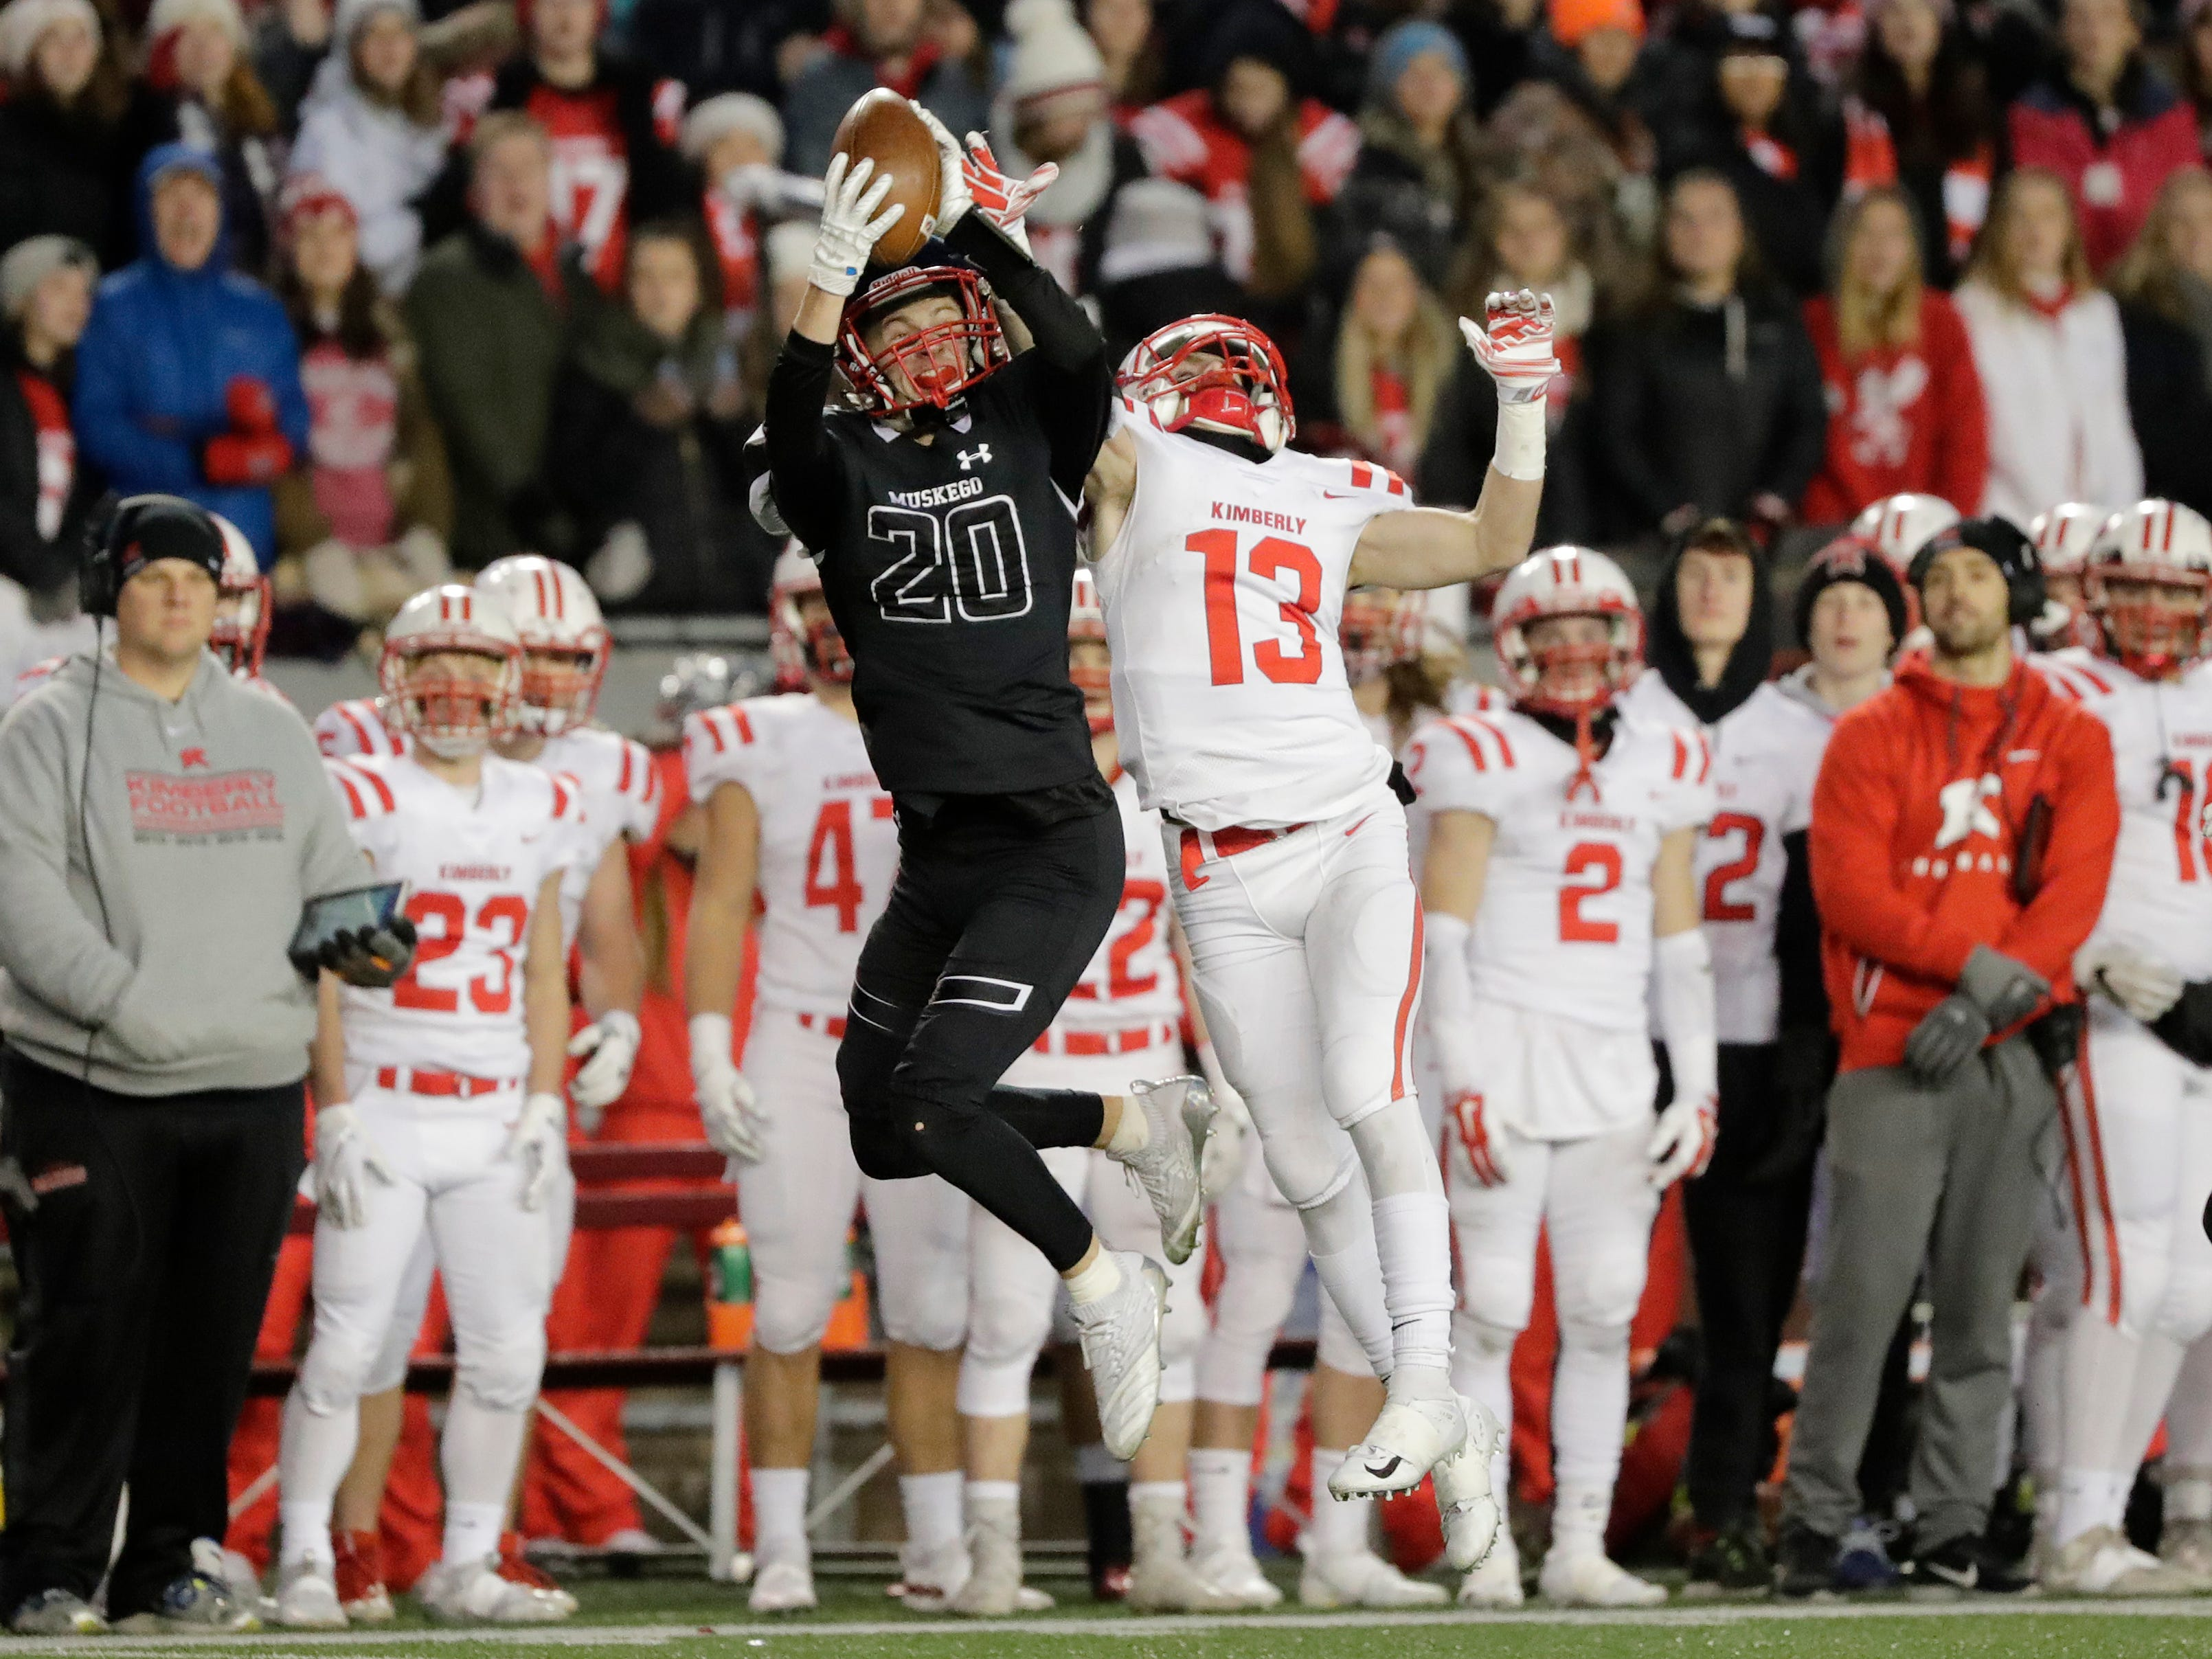 Muskego's Sam Chovanec (20) intercepts a pass intended for Kimberly's Zach Lechnir (13) in the WIAA Division 1 championship game at Camp Randall Stadium on Friday, November 16, 2018 in Madison, Wis.